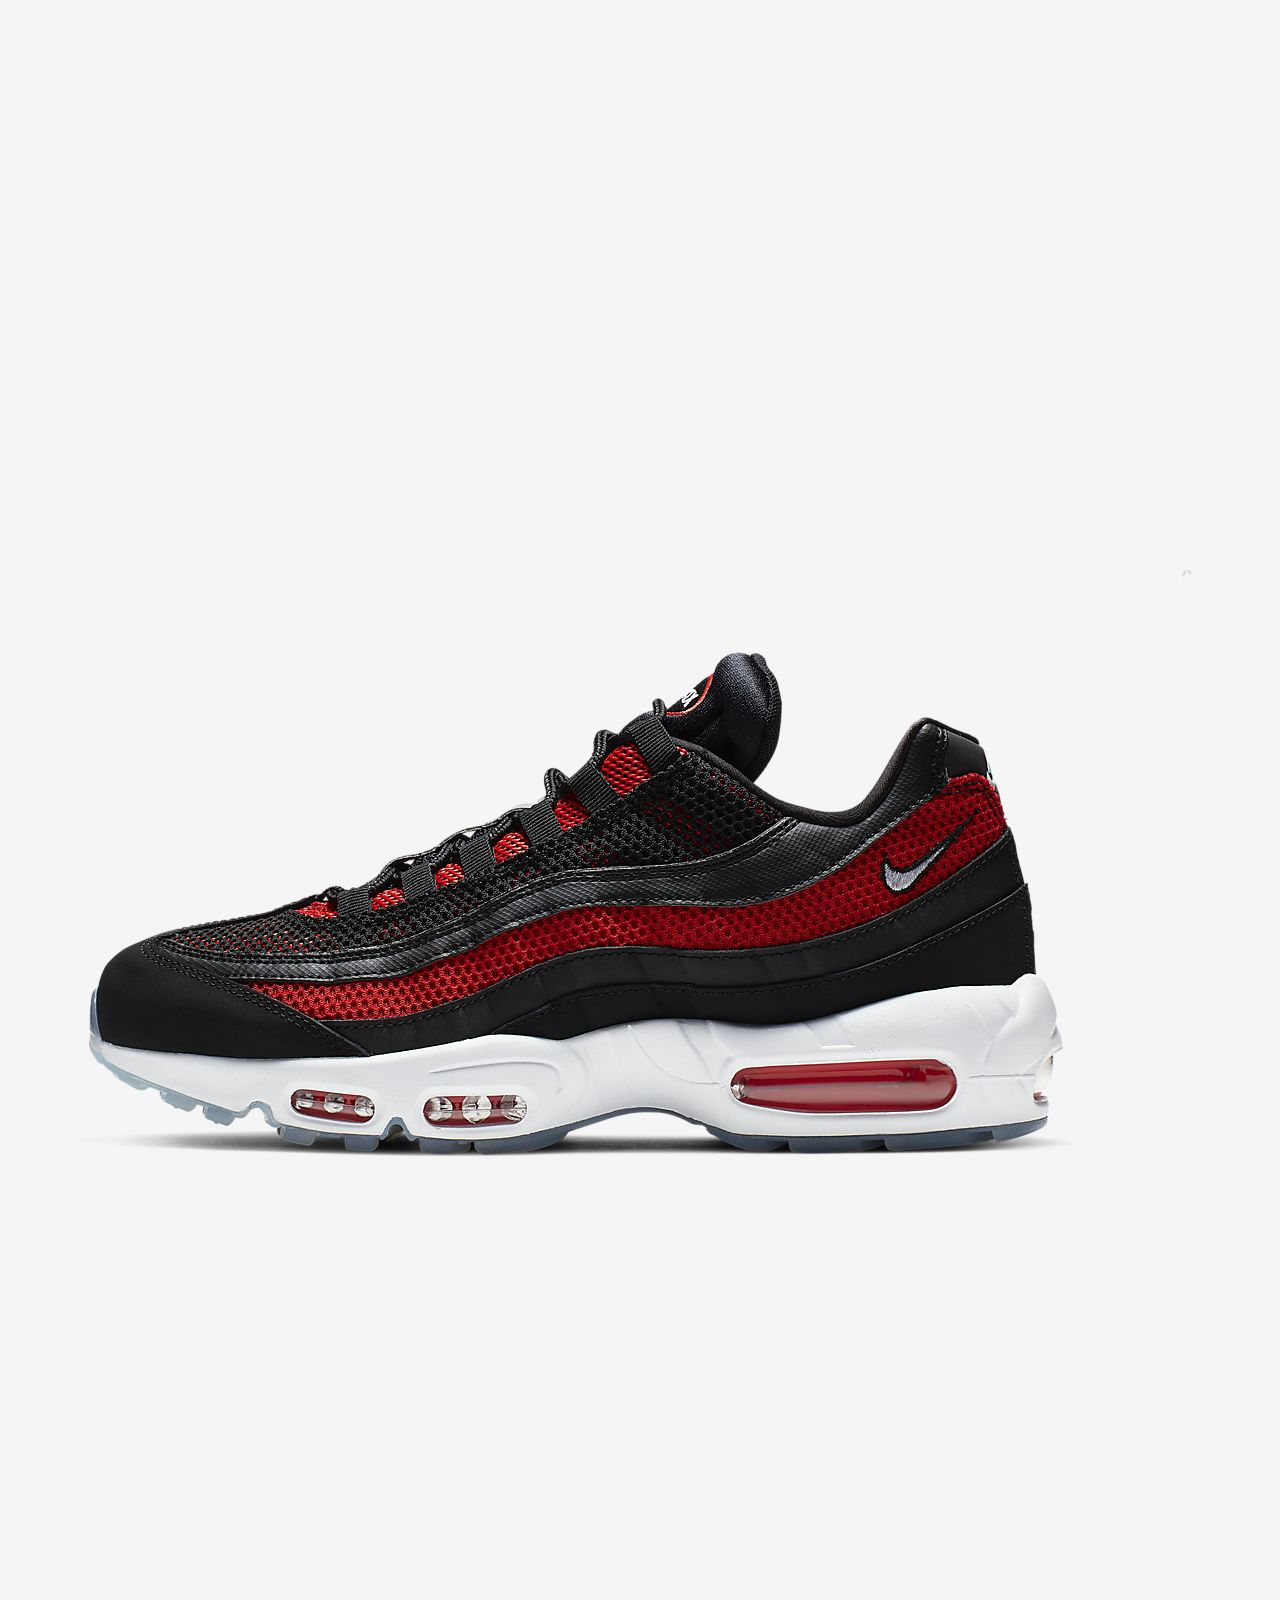 official photos 95e19 ab9a1 Nike Air Max 95 Essential